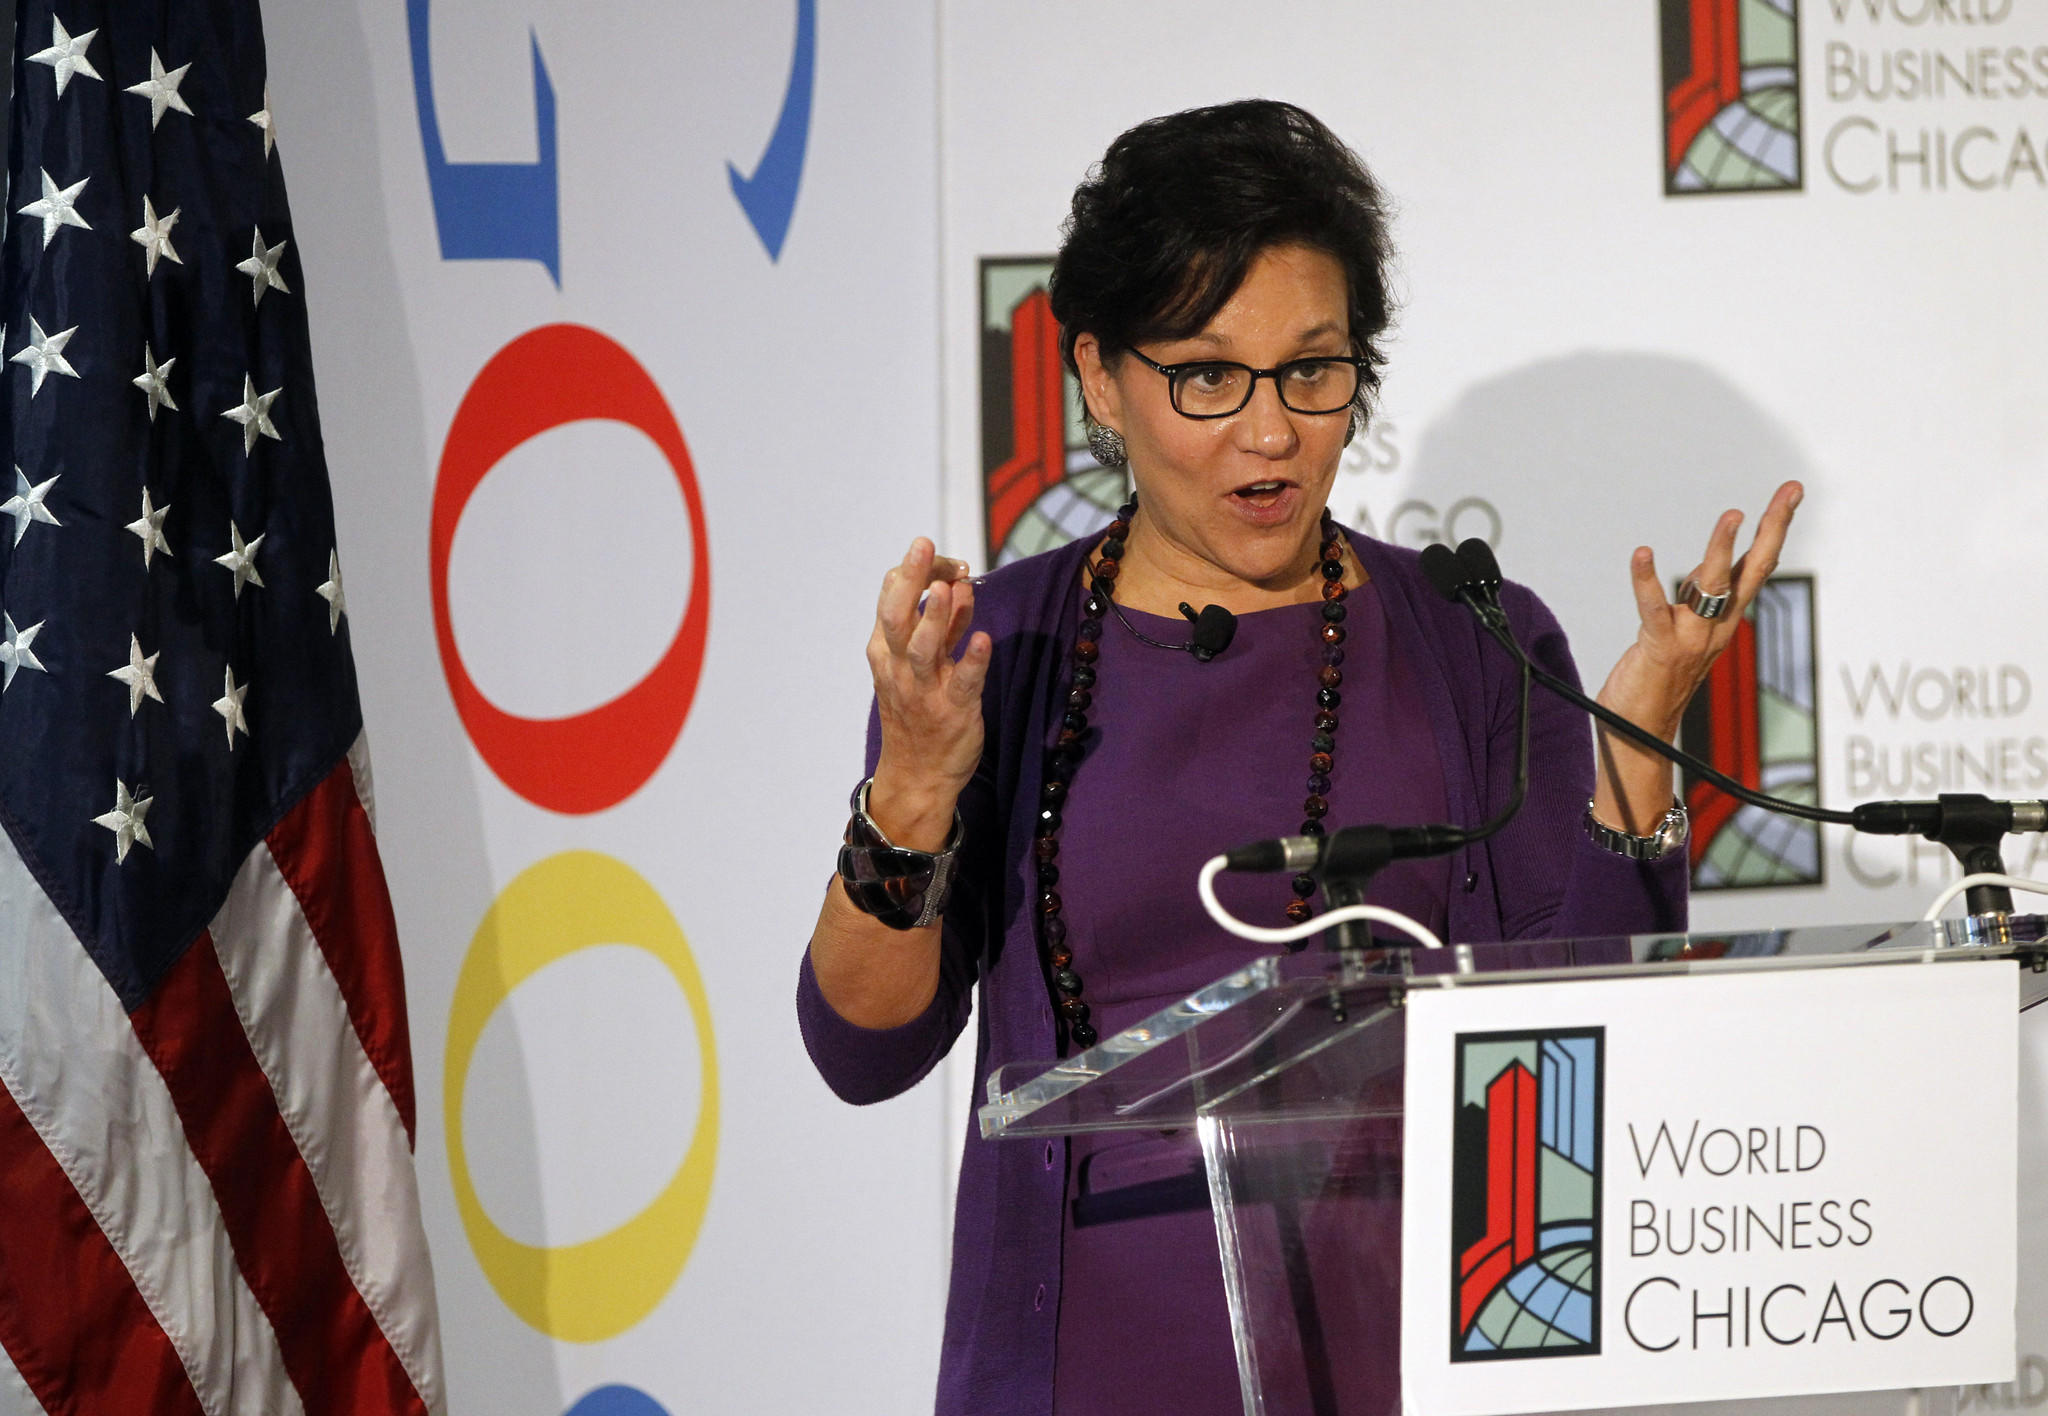 Commerce Secretary Penny Pritzker speaks during a World Business Chicago event Wednesday, Nov. 6, 2013 at Google's River North offices.